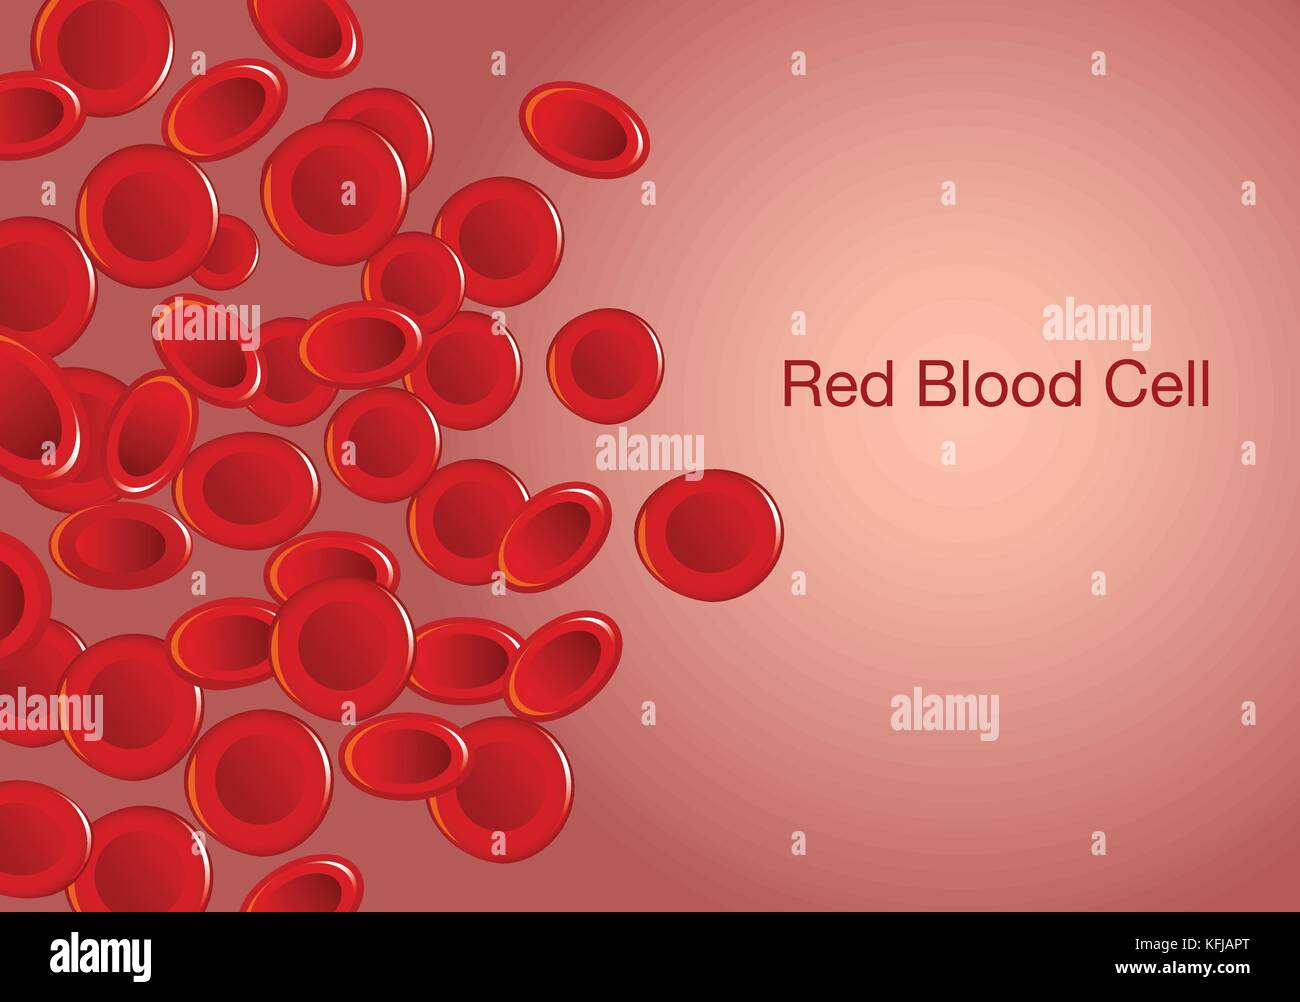 Red blood cells and wording on background. - Stock Image